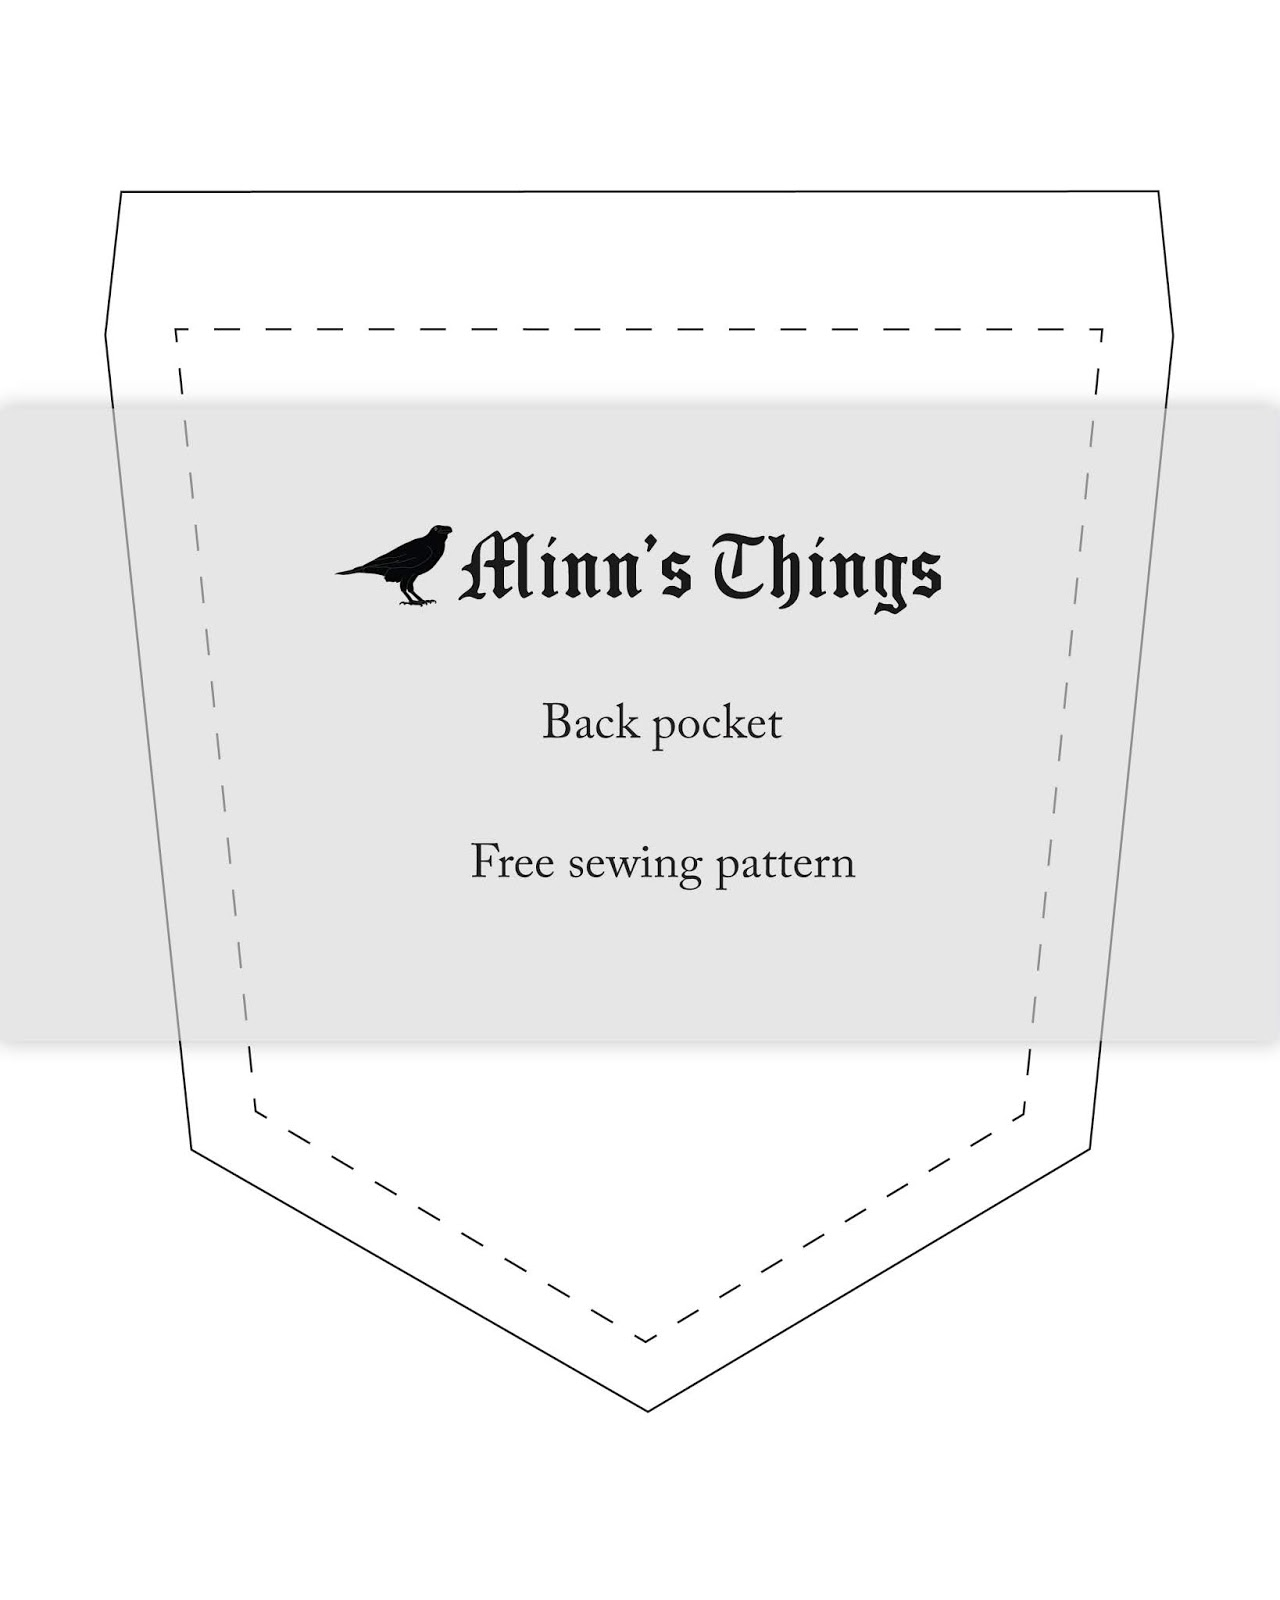 free sewing pattern back pocket for pants jeans skirts minn's things